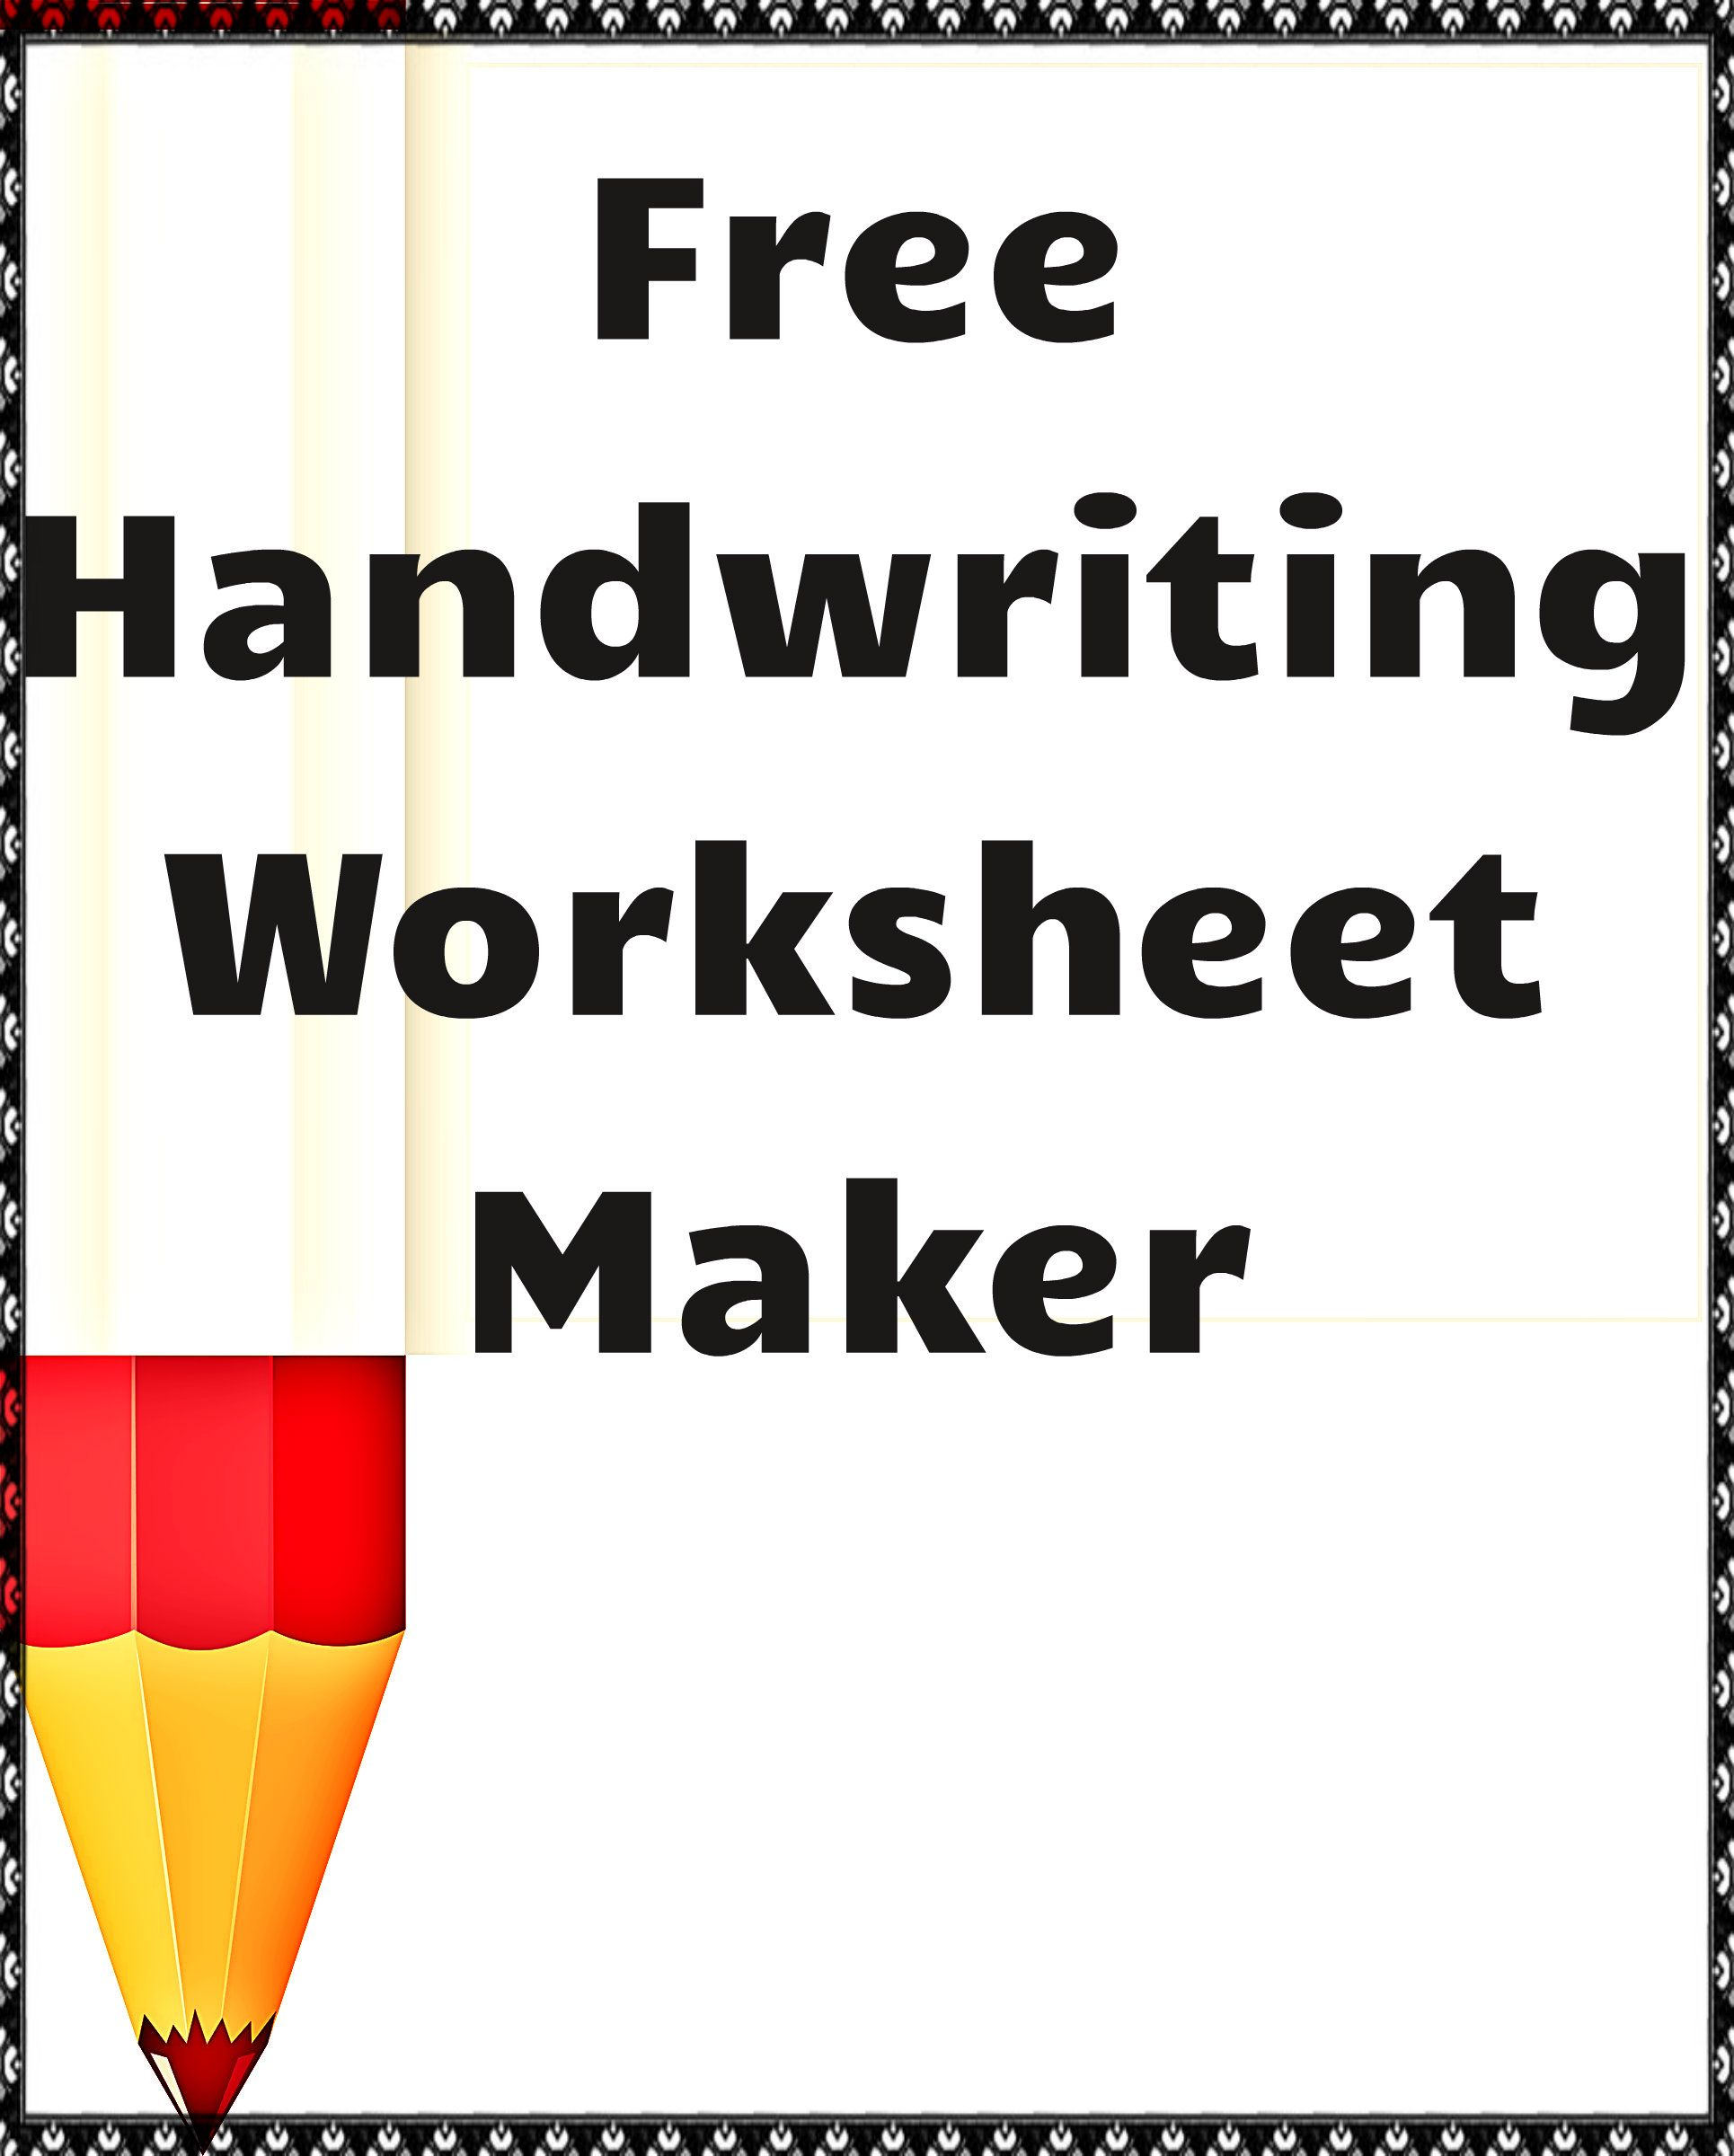 Worksheets Free Vocabulary Worksheet Maker free handwriting worksheet maker kindergartenklub com pinterest maker